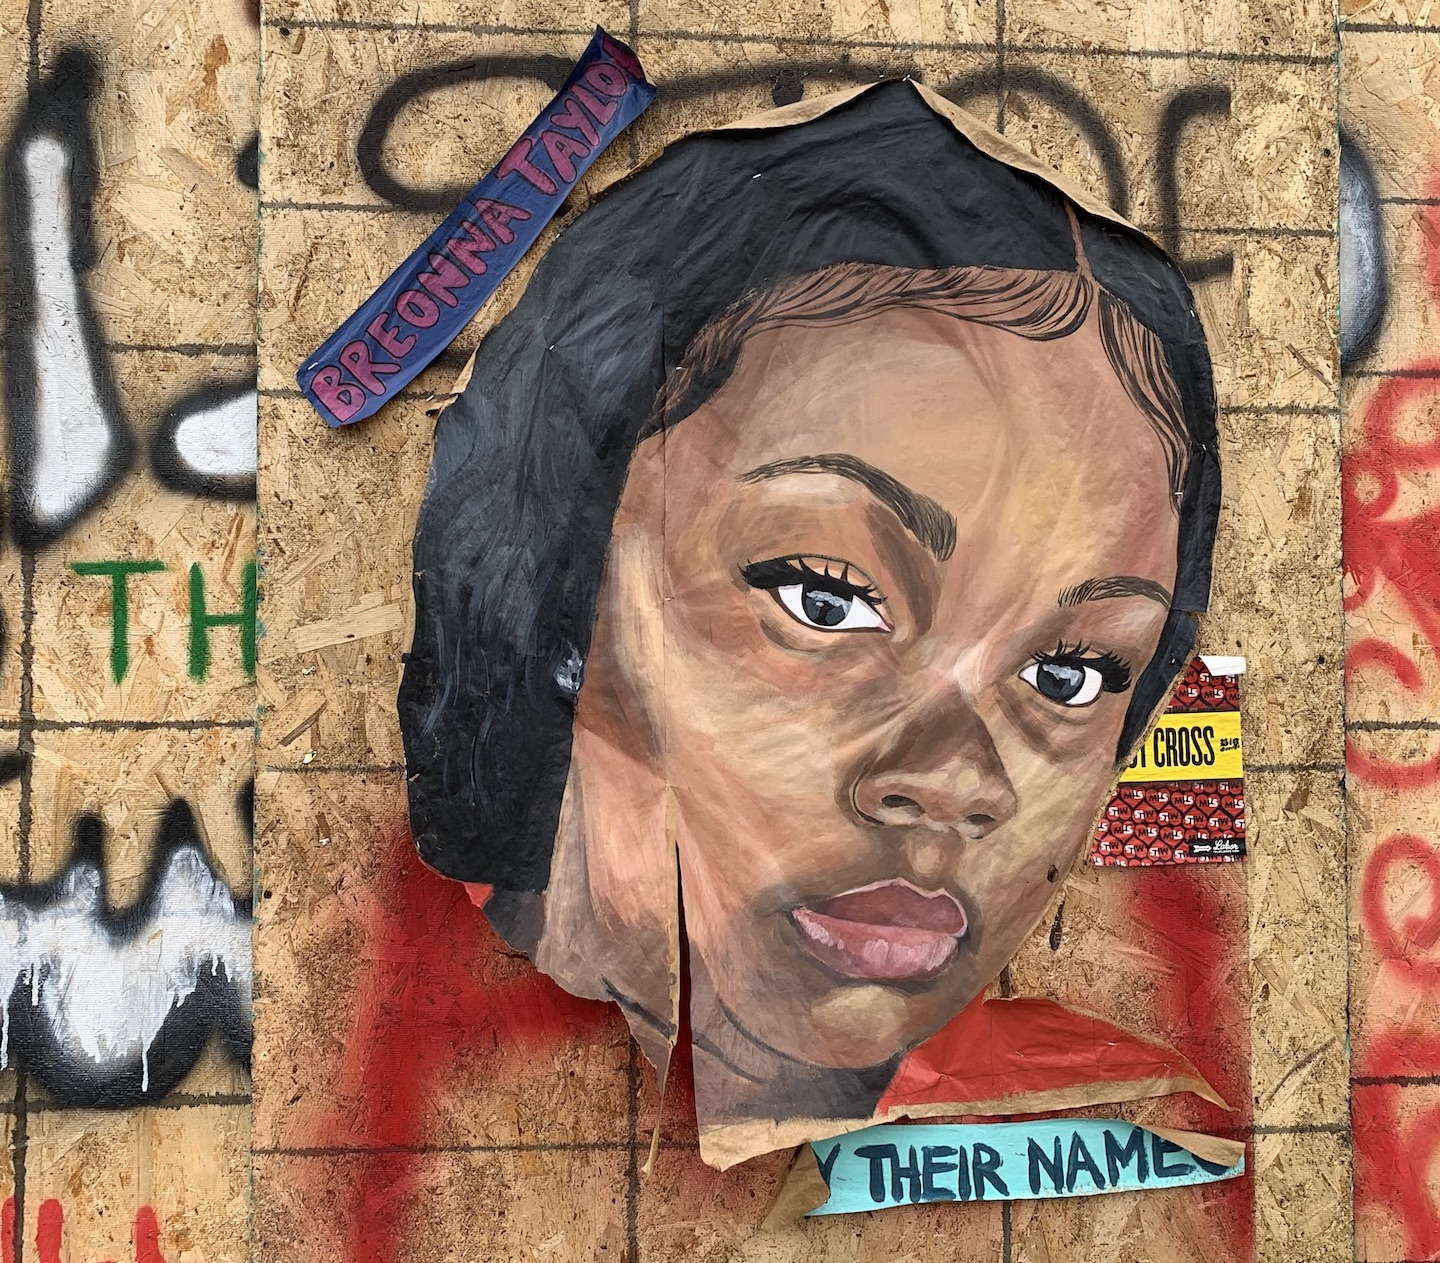 A tribute to Breonna Taylor by Face Me Por Favor near 38th and Chicago. (Heather Shirey)